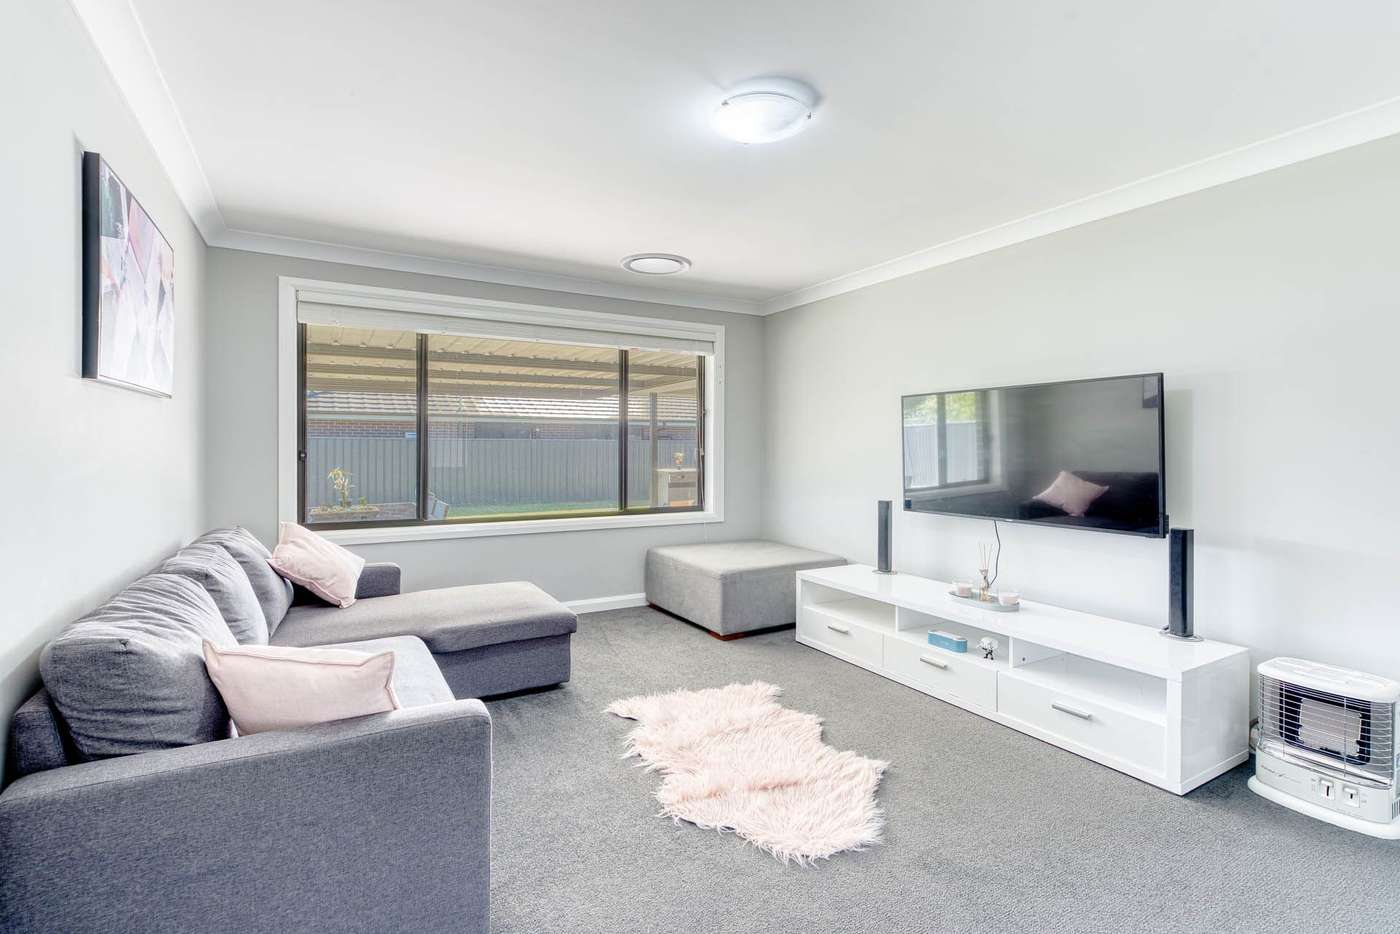 Sixth view of Homely house listing, 18 Manorina Place, Tahmoor NSW 2573